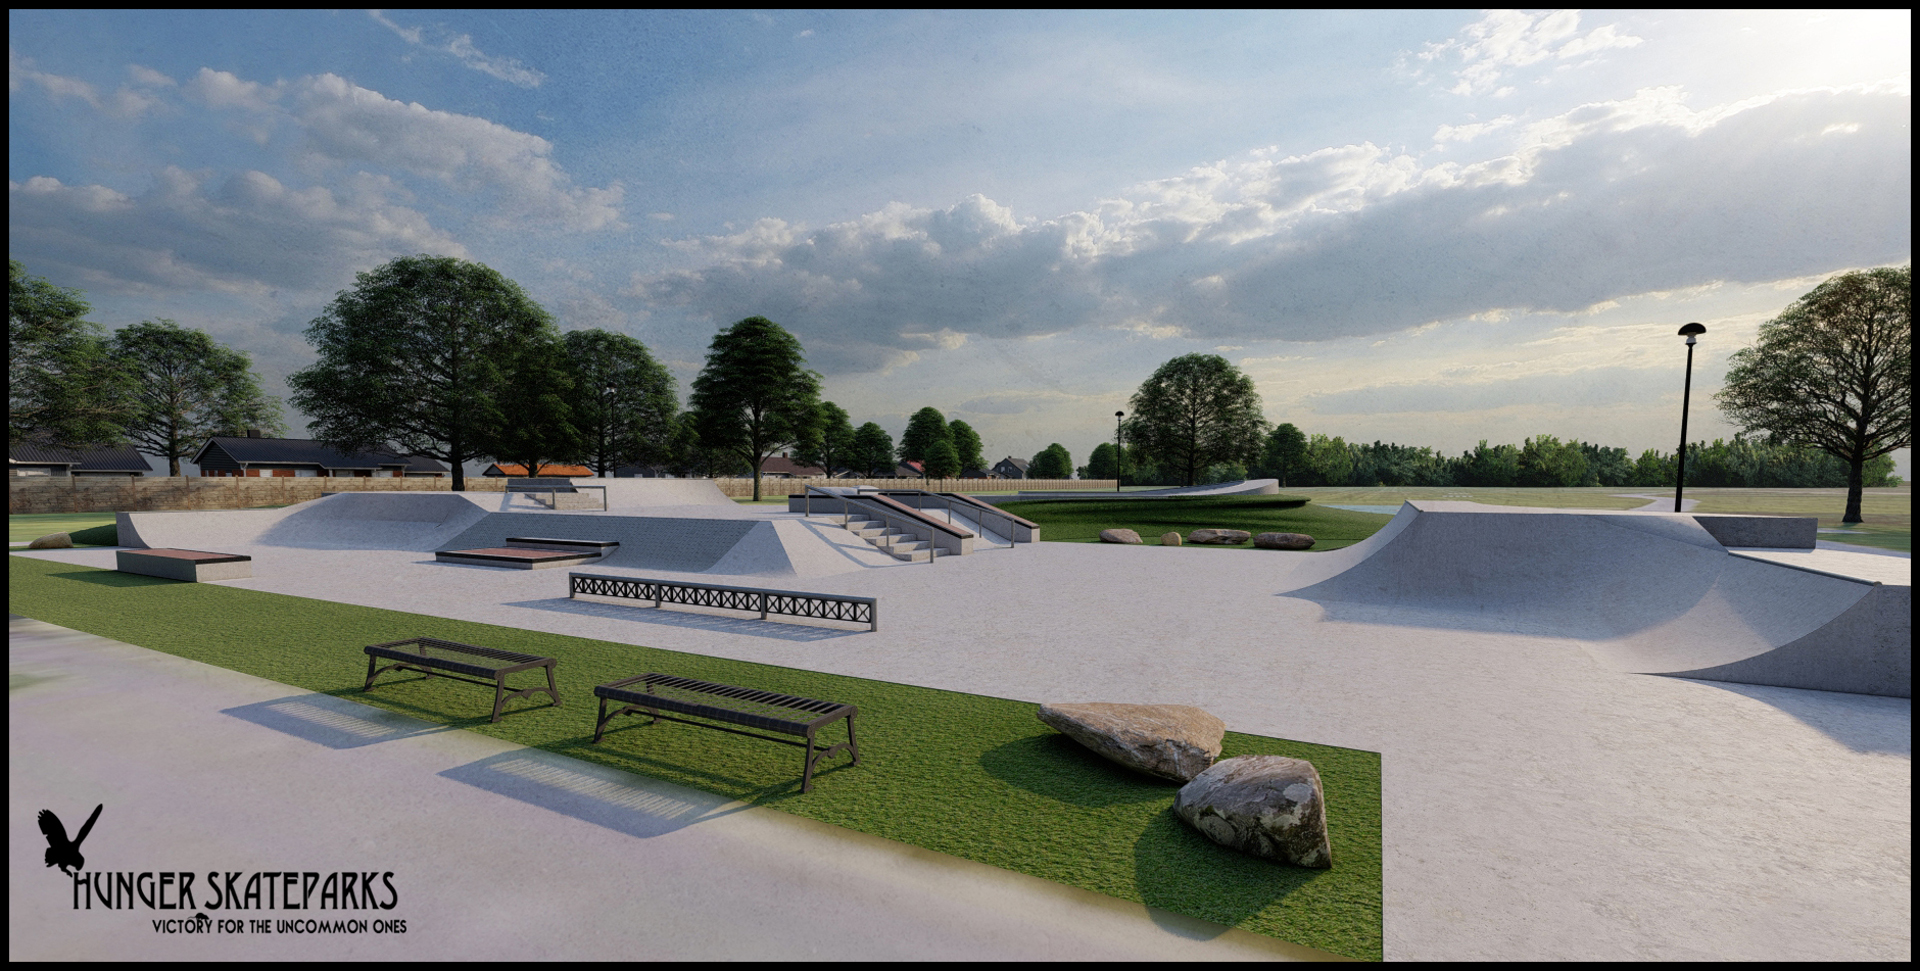 Northeast Skatepark